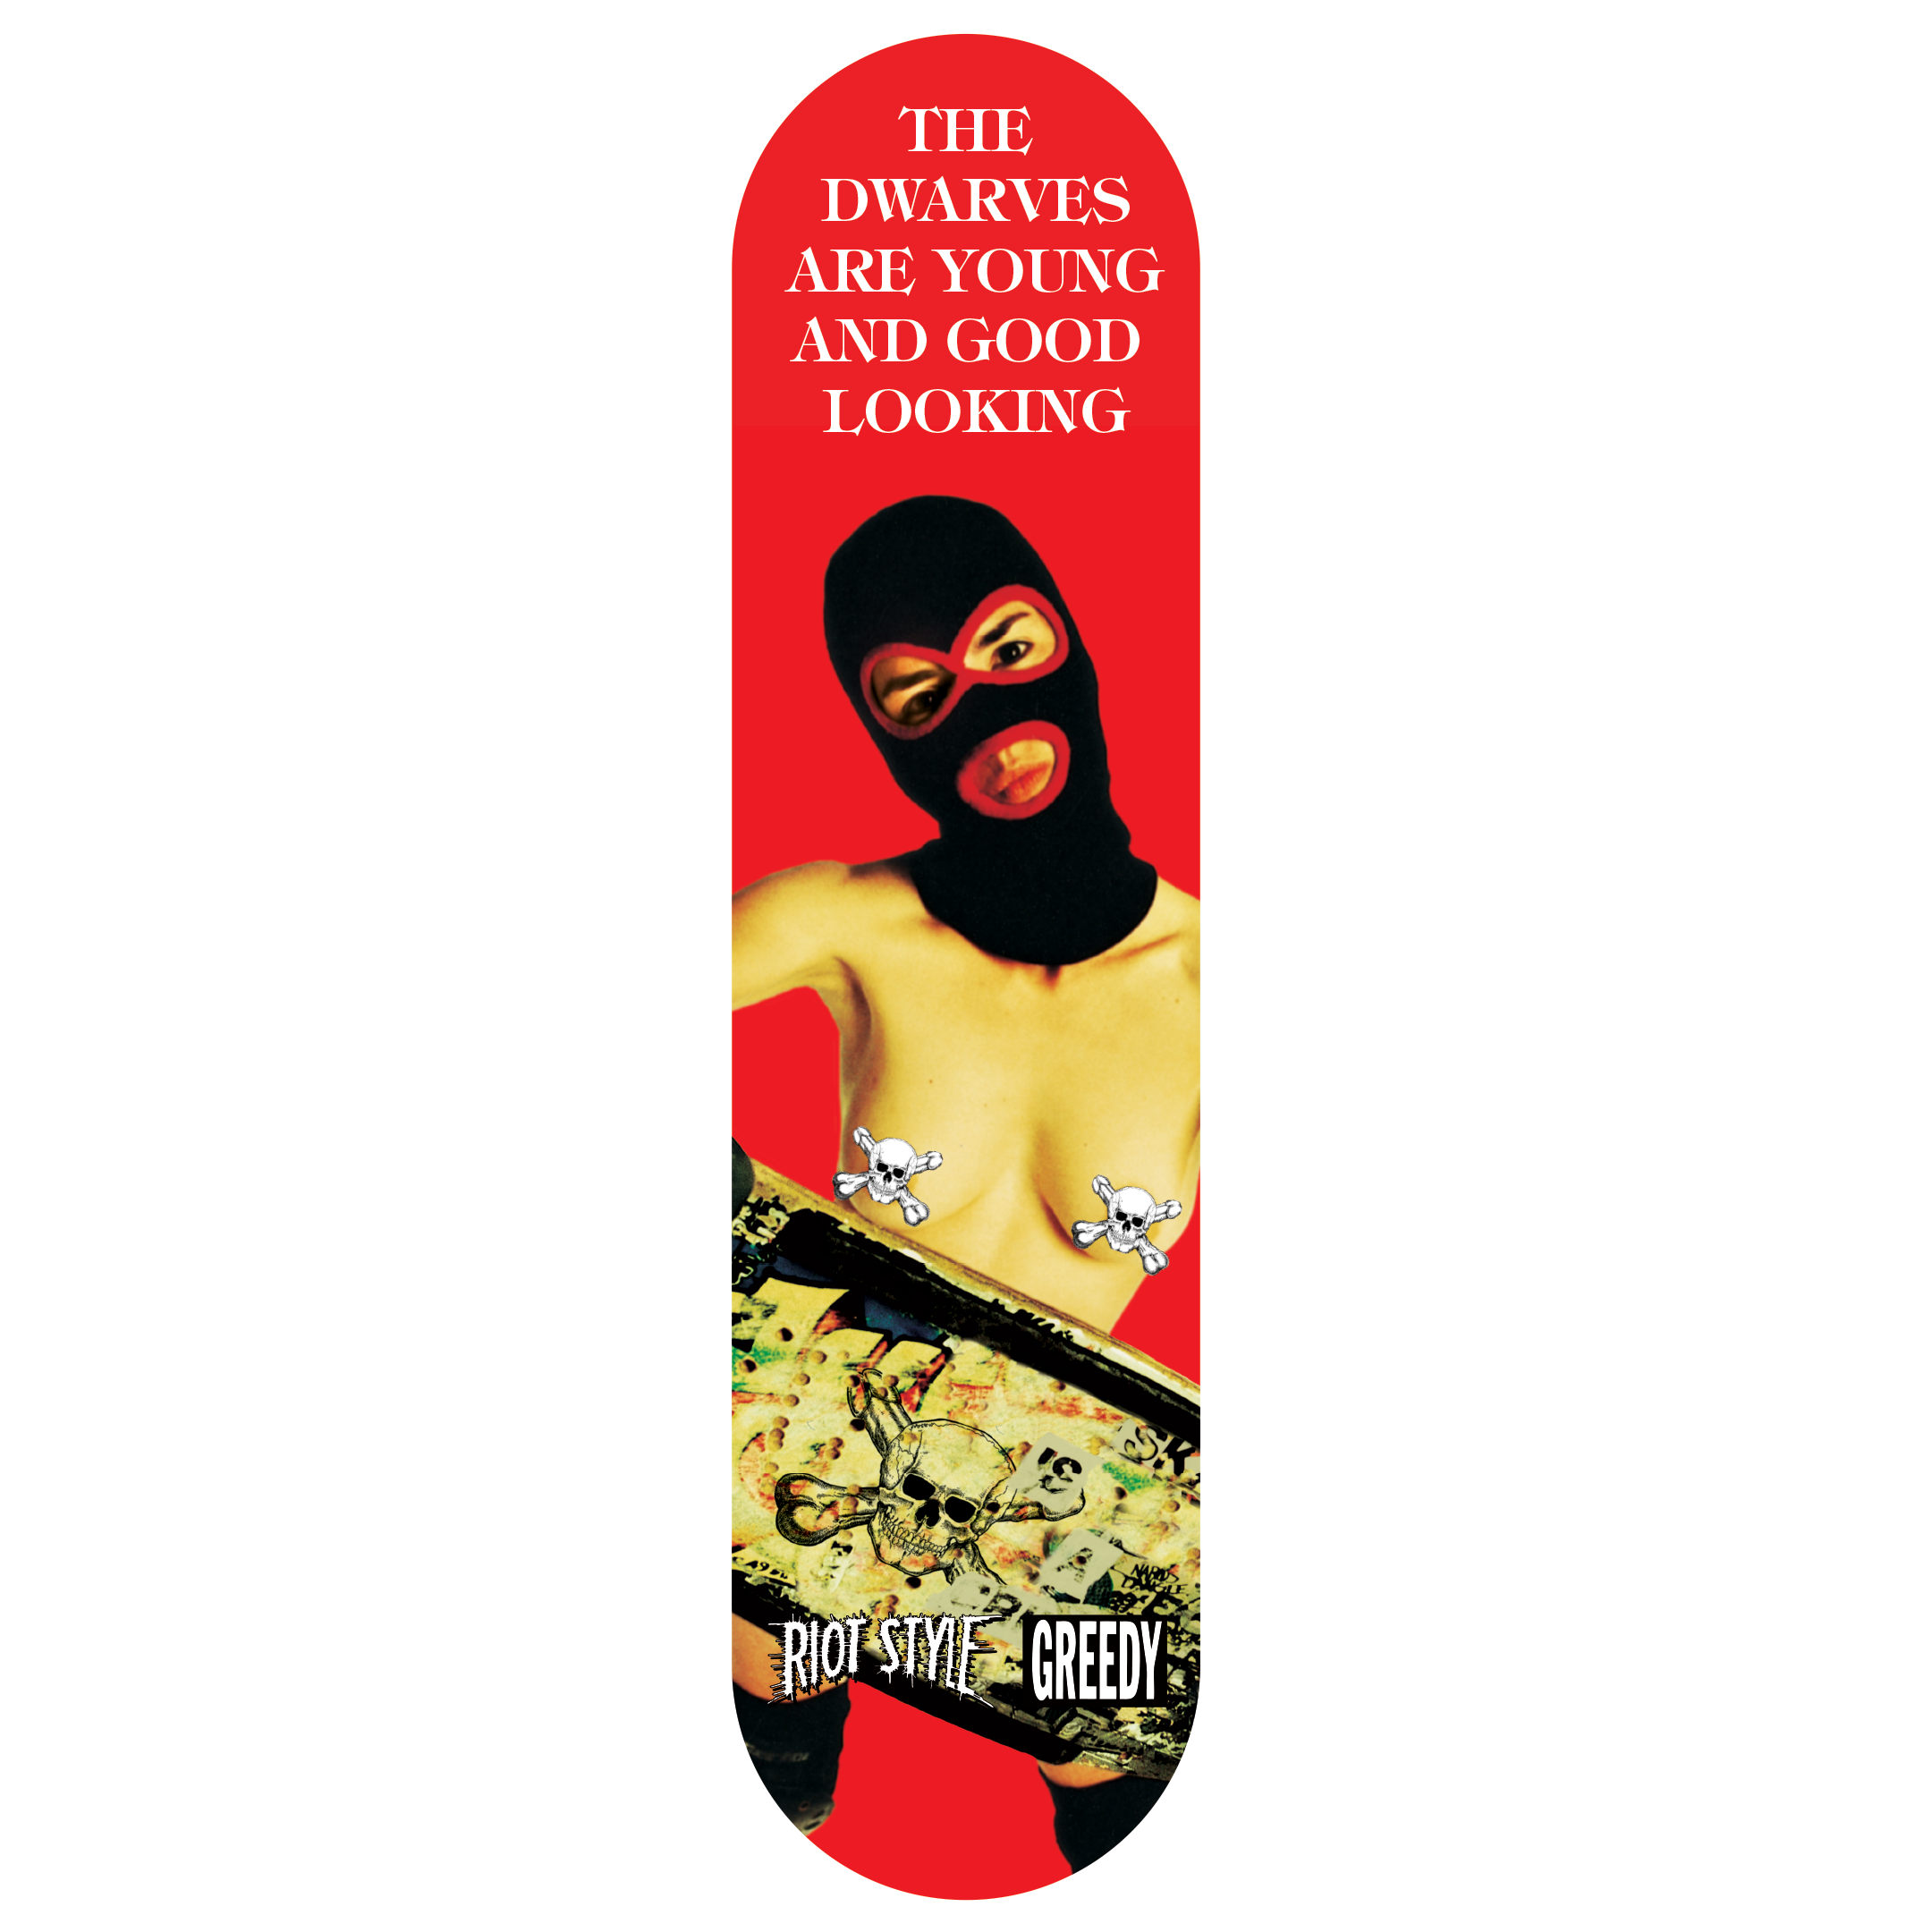 The Dwarves Are Young And Good Looking Skateboards